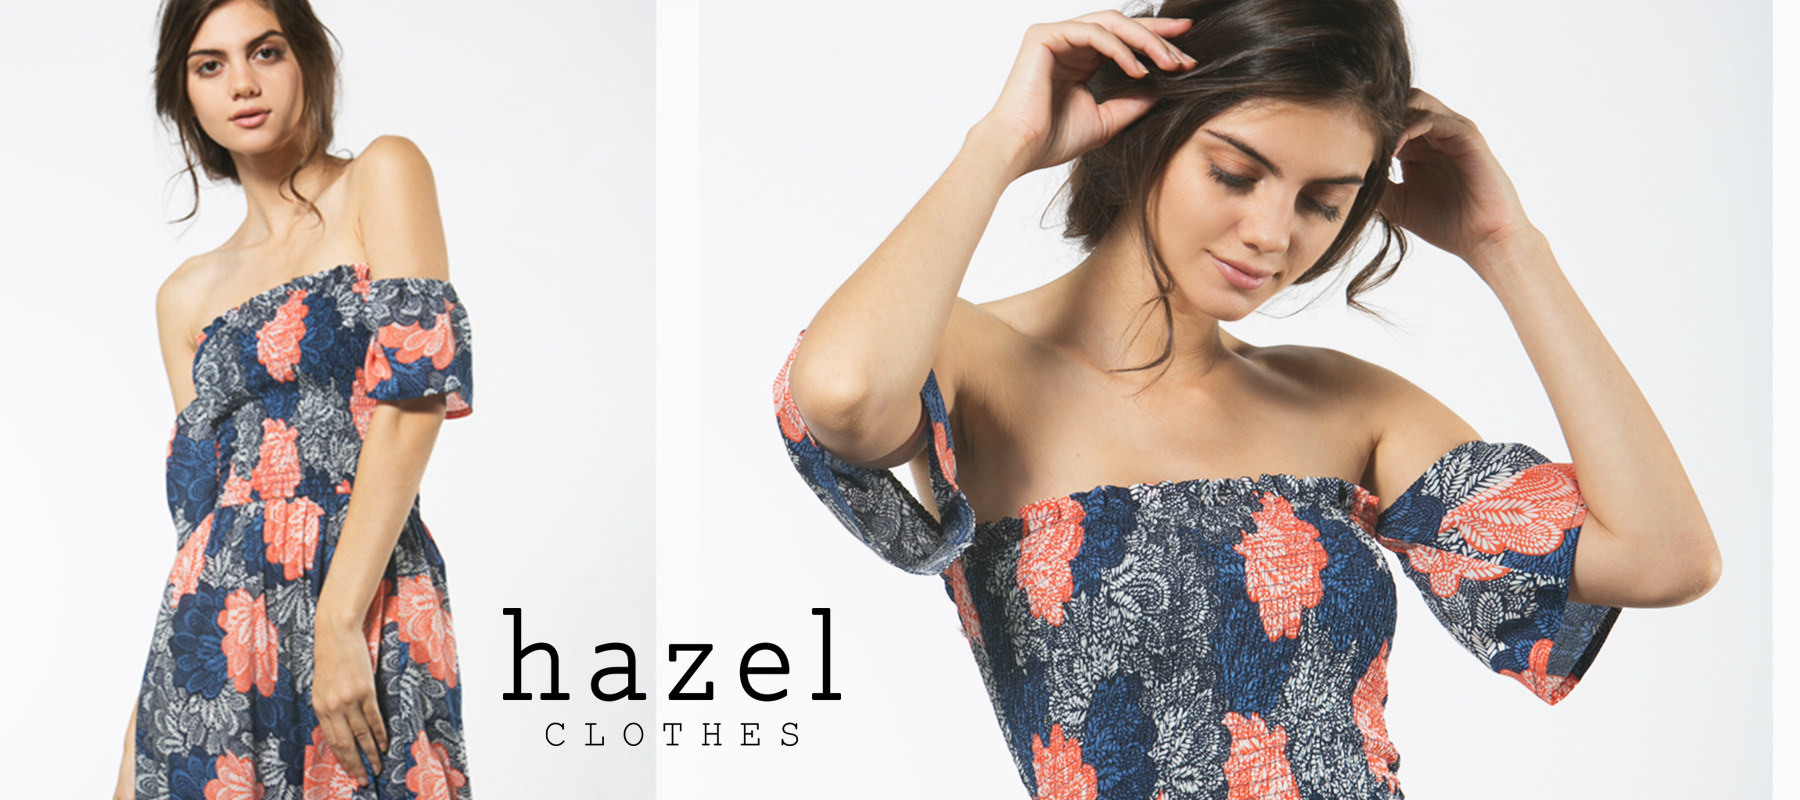 hazel clothes slide1